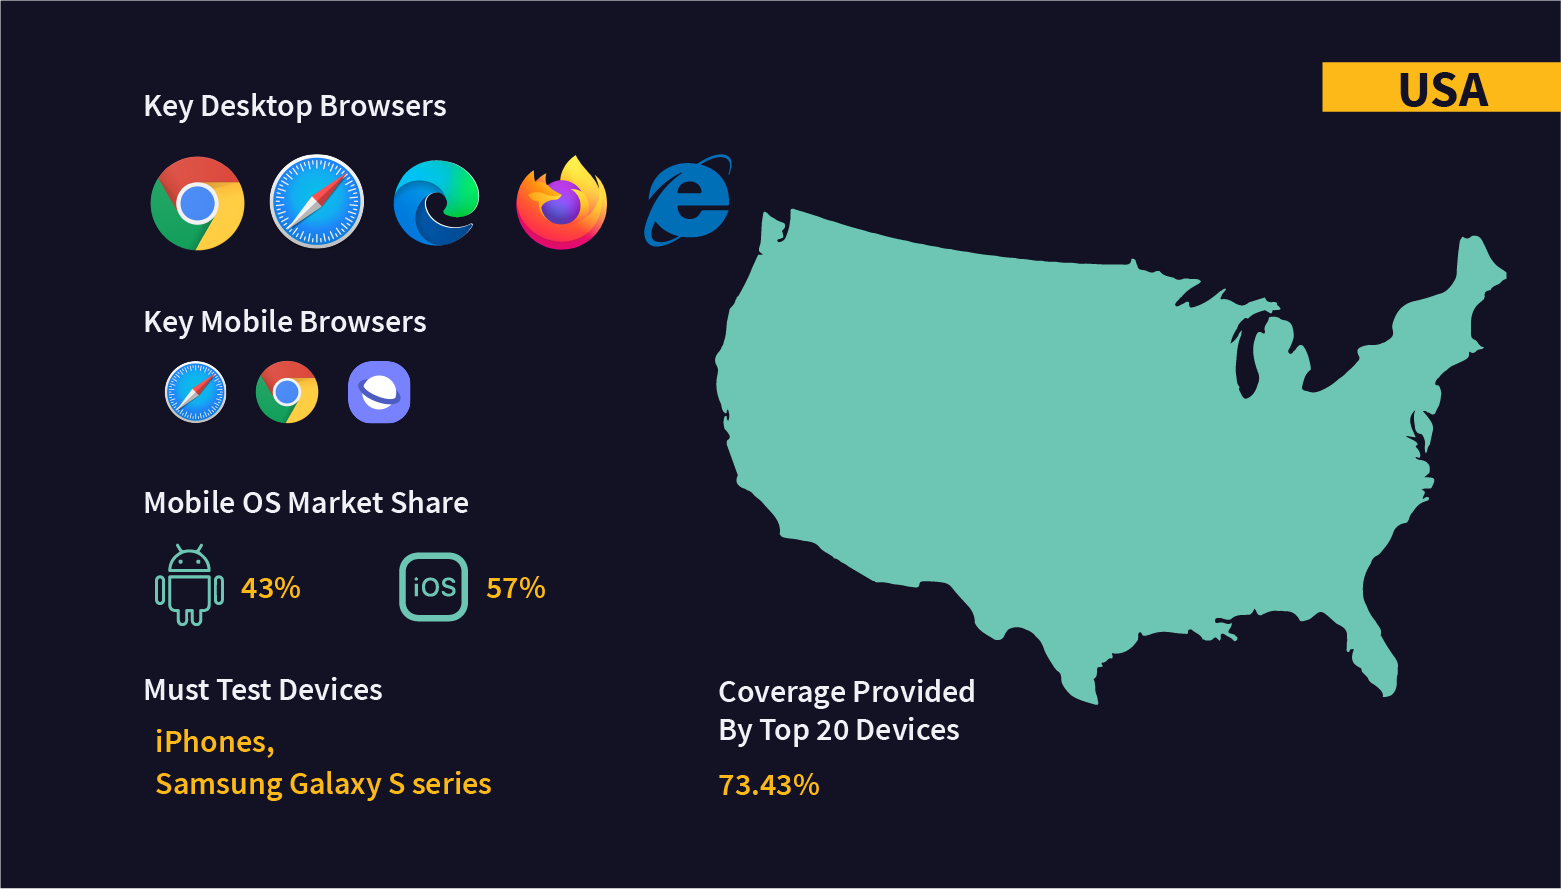 Fragmentation in OS, browsers, and devices in USA